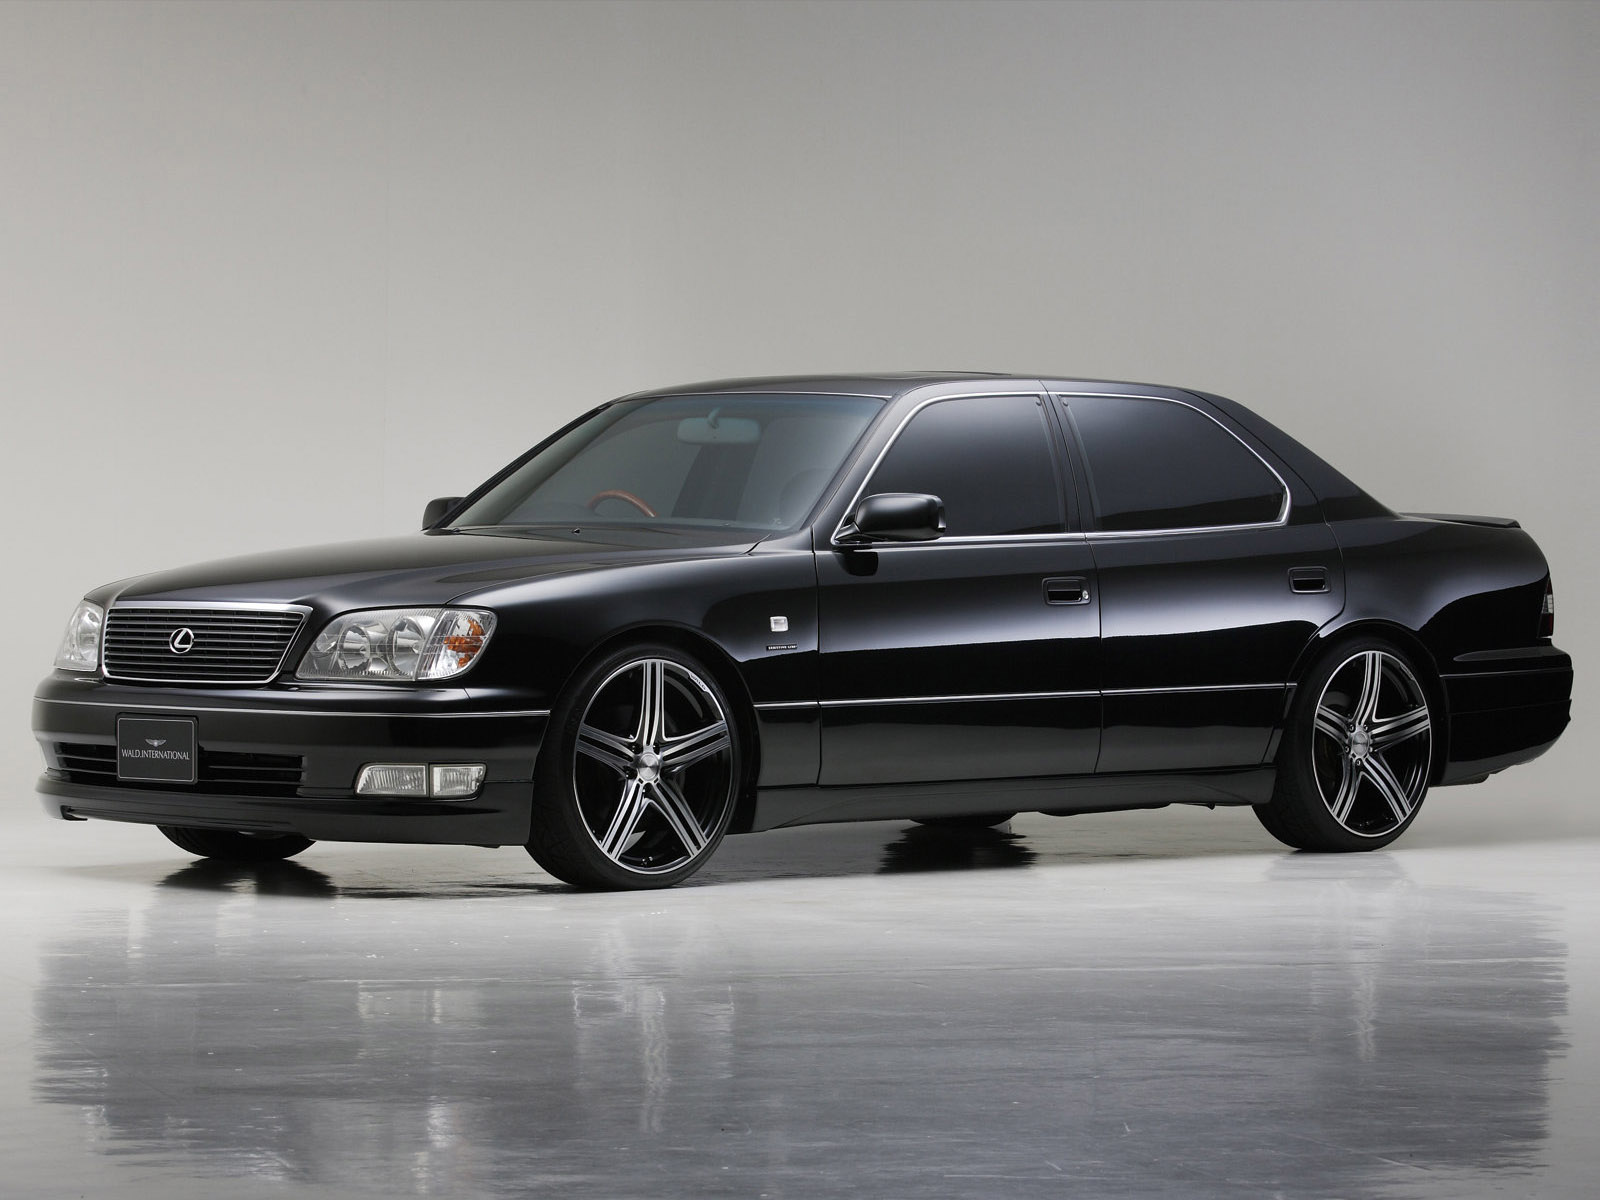 wald lexus ls 400 ucf20 executive line body kit Free Picture Download Image Of